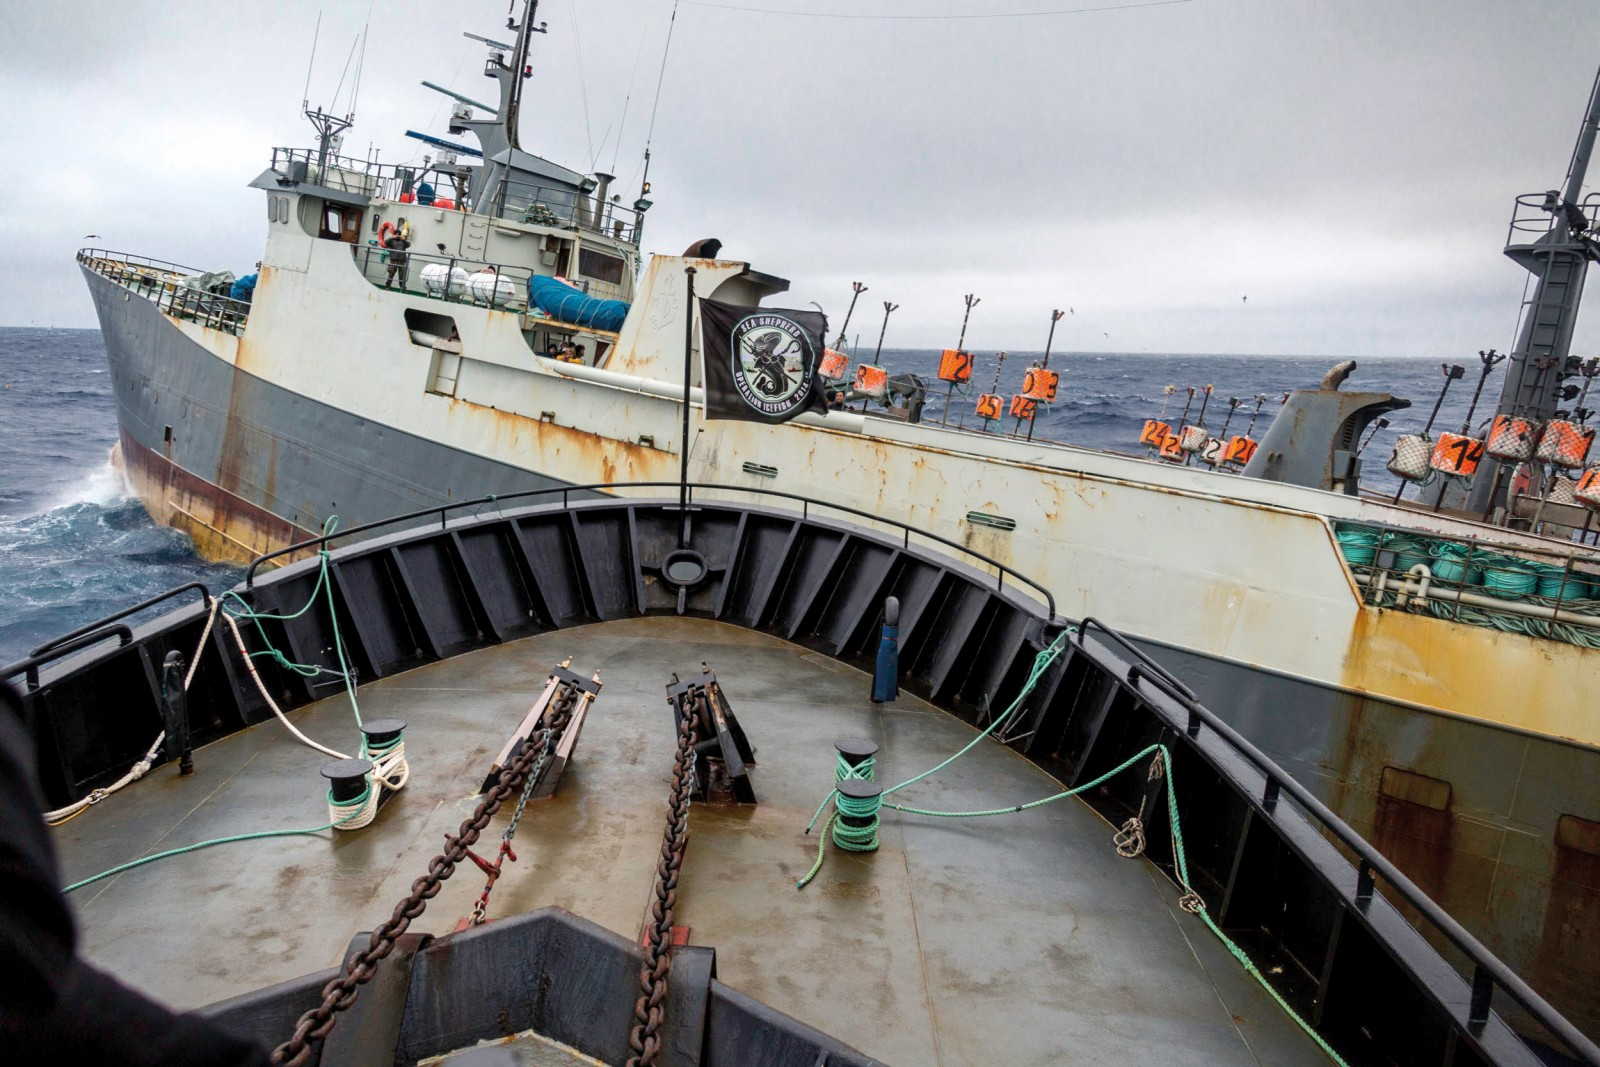 The illegal fishing vessel Thunder takes an aggressive turn into the course of the Bob Barker in the Southern Ocean, below,